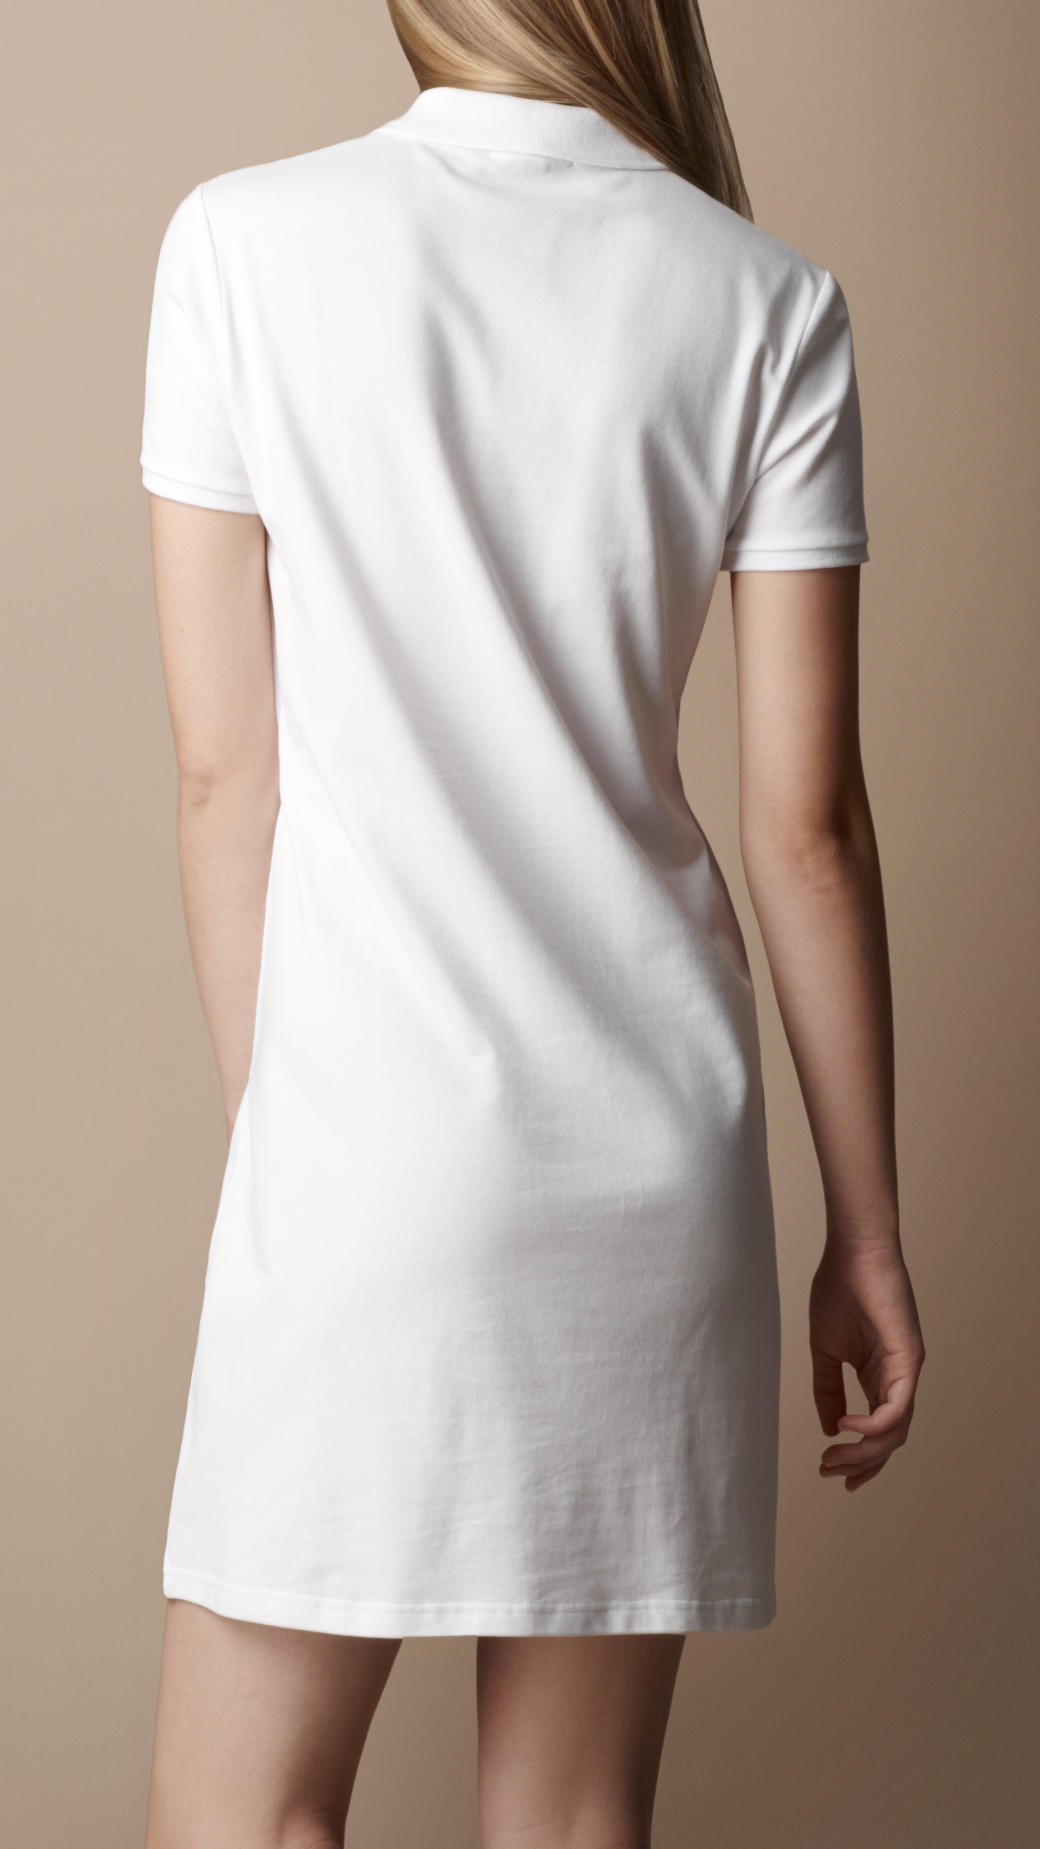 0fbb21200f85 Lyst - Burberry Cotton Pique Polo Dress in White